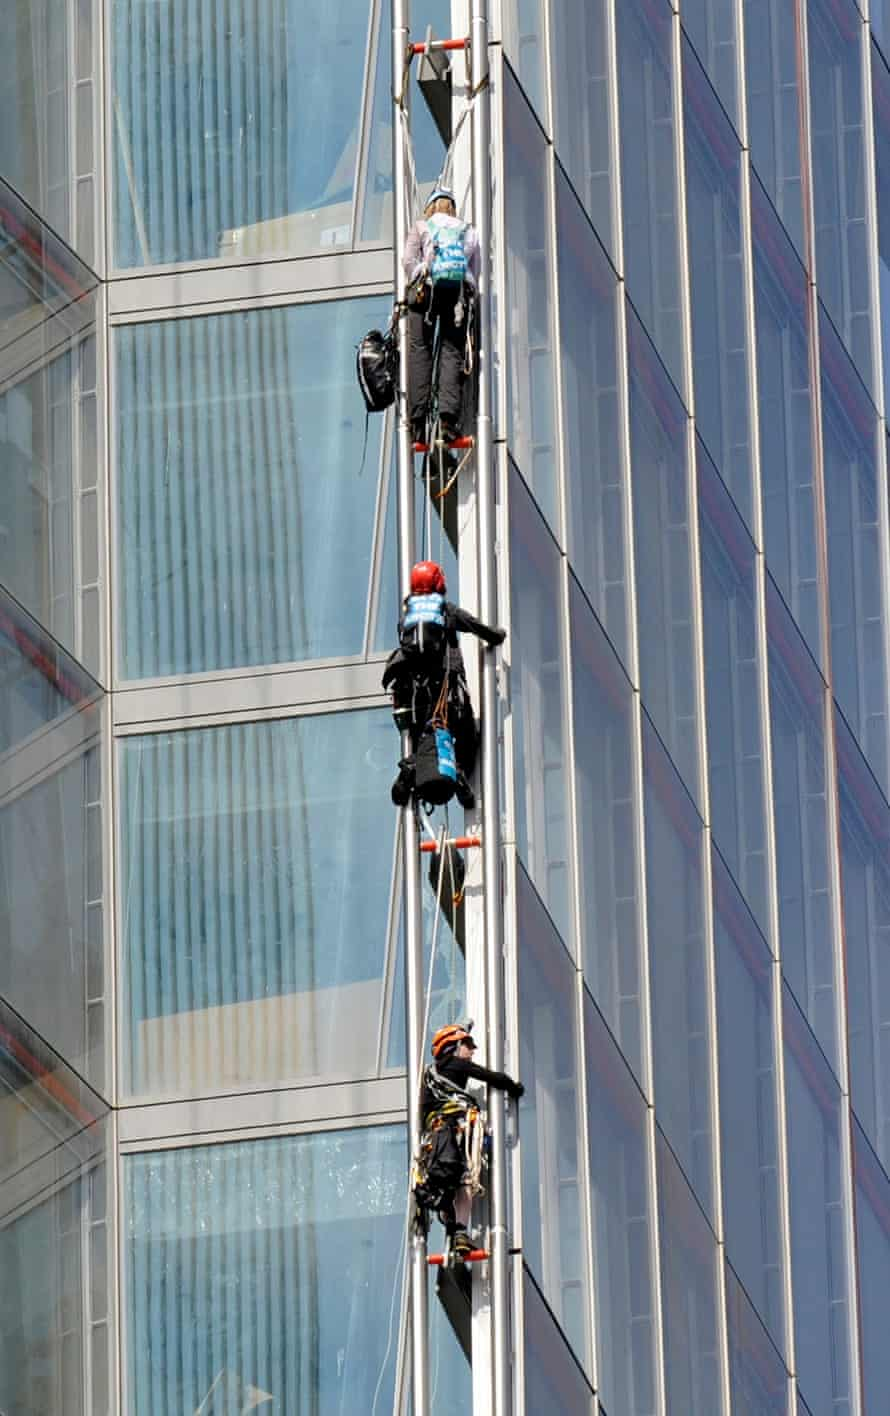 Three of the Greenpeace activists mid-ascent.